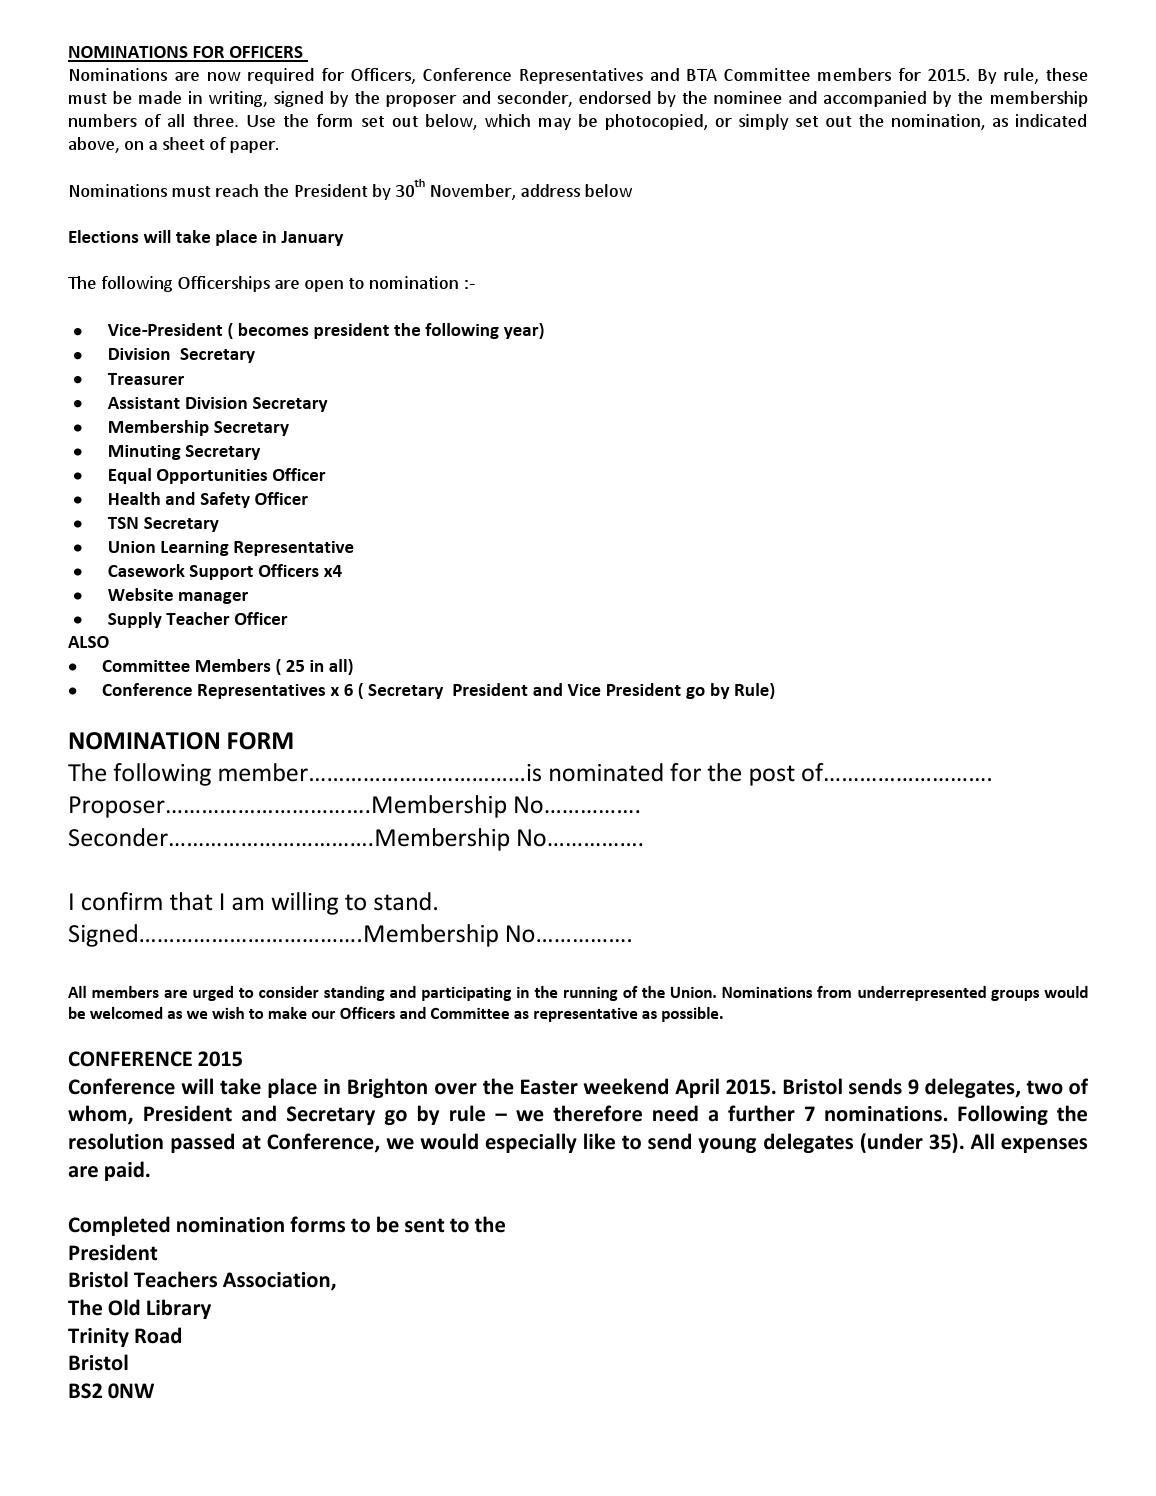 Nomination form for bta officers 2015 by marjorie McCartney - issuu